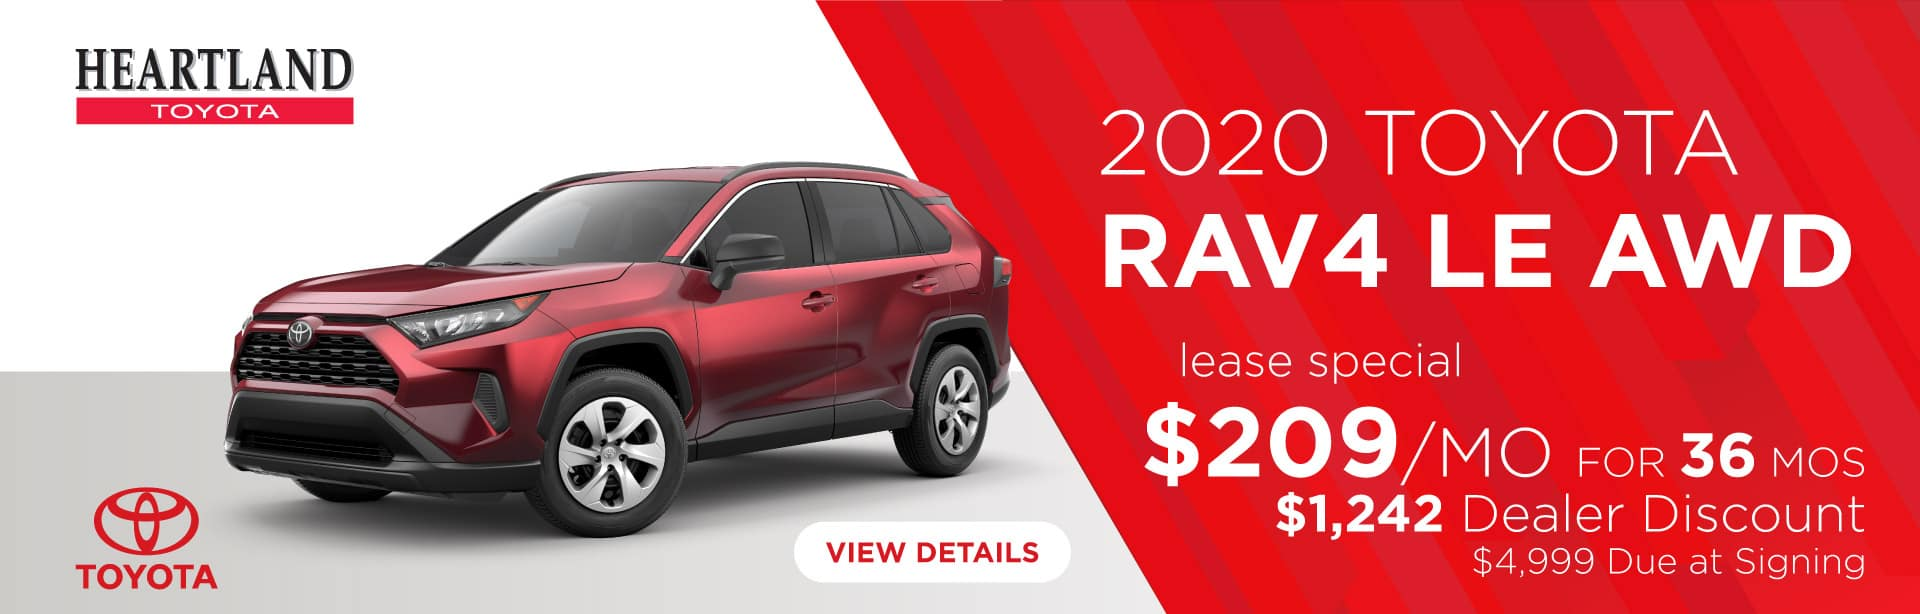 2020 Toyota RAV4 LE AWD  $209/mo for 36 months* Dealer Discount: $1,242 $4,999 Due at Signing    *Offer valid on 2020 Toyota RAV4 LE AWD. $209 per month for 36 months. Dealer Discount: $1,242. Lease with $4,999 due at signing; includes a $695 acquisition fee. DEAL #416058. Valid on VIN: 2T3G1RFVXLW093273, 2T3G1RFV6LW093027, 2T3G1RFV0LC069193. MSRP $29,050. Lease is through TFS. Subject to credit approval. No Security deposit required. Excludes taxes, title, and fees. 36 monthly payments required. Not all lessees will qualify for lowest payment through participating lender. Residency restrictions apply. Lessee responsible for mileage over 10,000 miles per year at $0.15/mile per year. Option to purchase at lease end. A negotiable dealer documentary service fee of up to $150 may be added to the sale price or capitalized cost. Offer expires 2/3/2020.